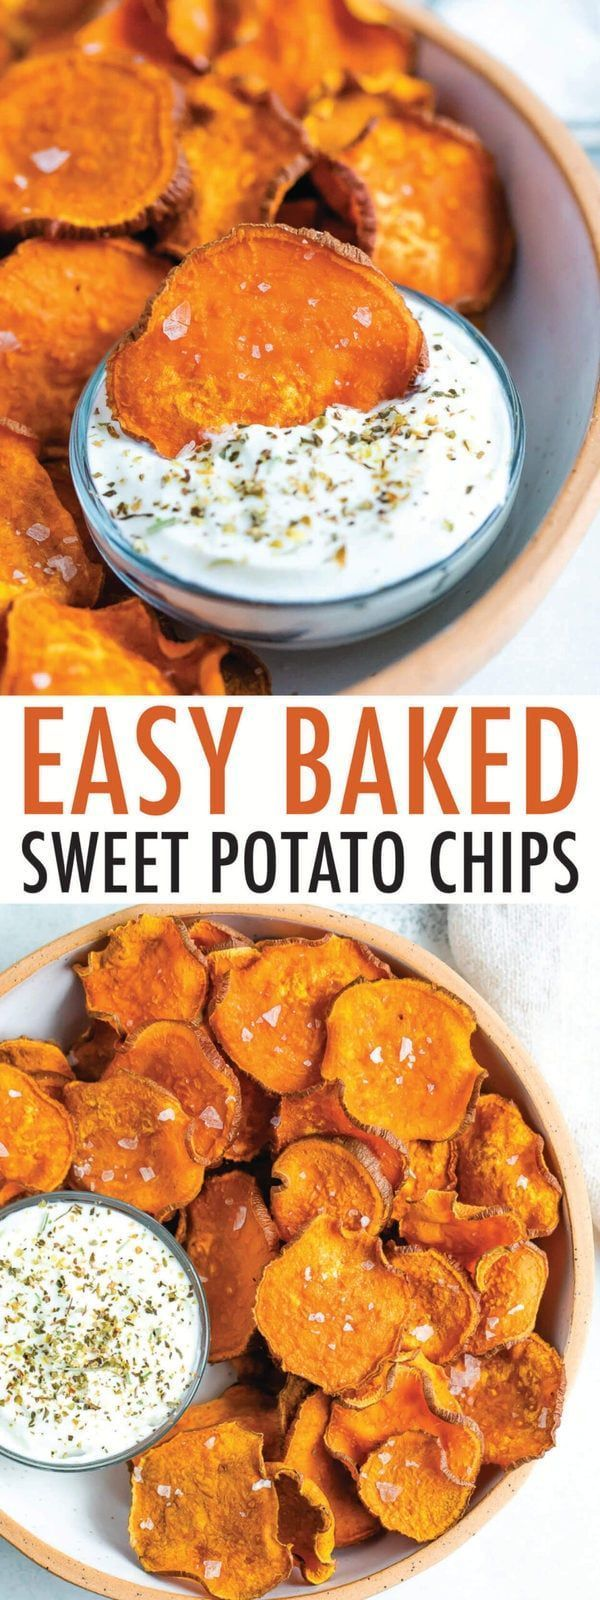 Baked Sweet Potato Chips Eating Bird Food Recipe Sweet Potato Chips Food Homemade Sweet Potato Chips